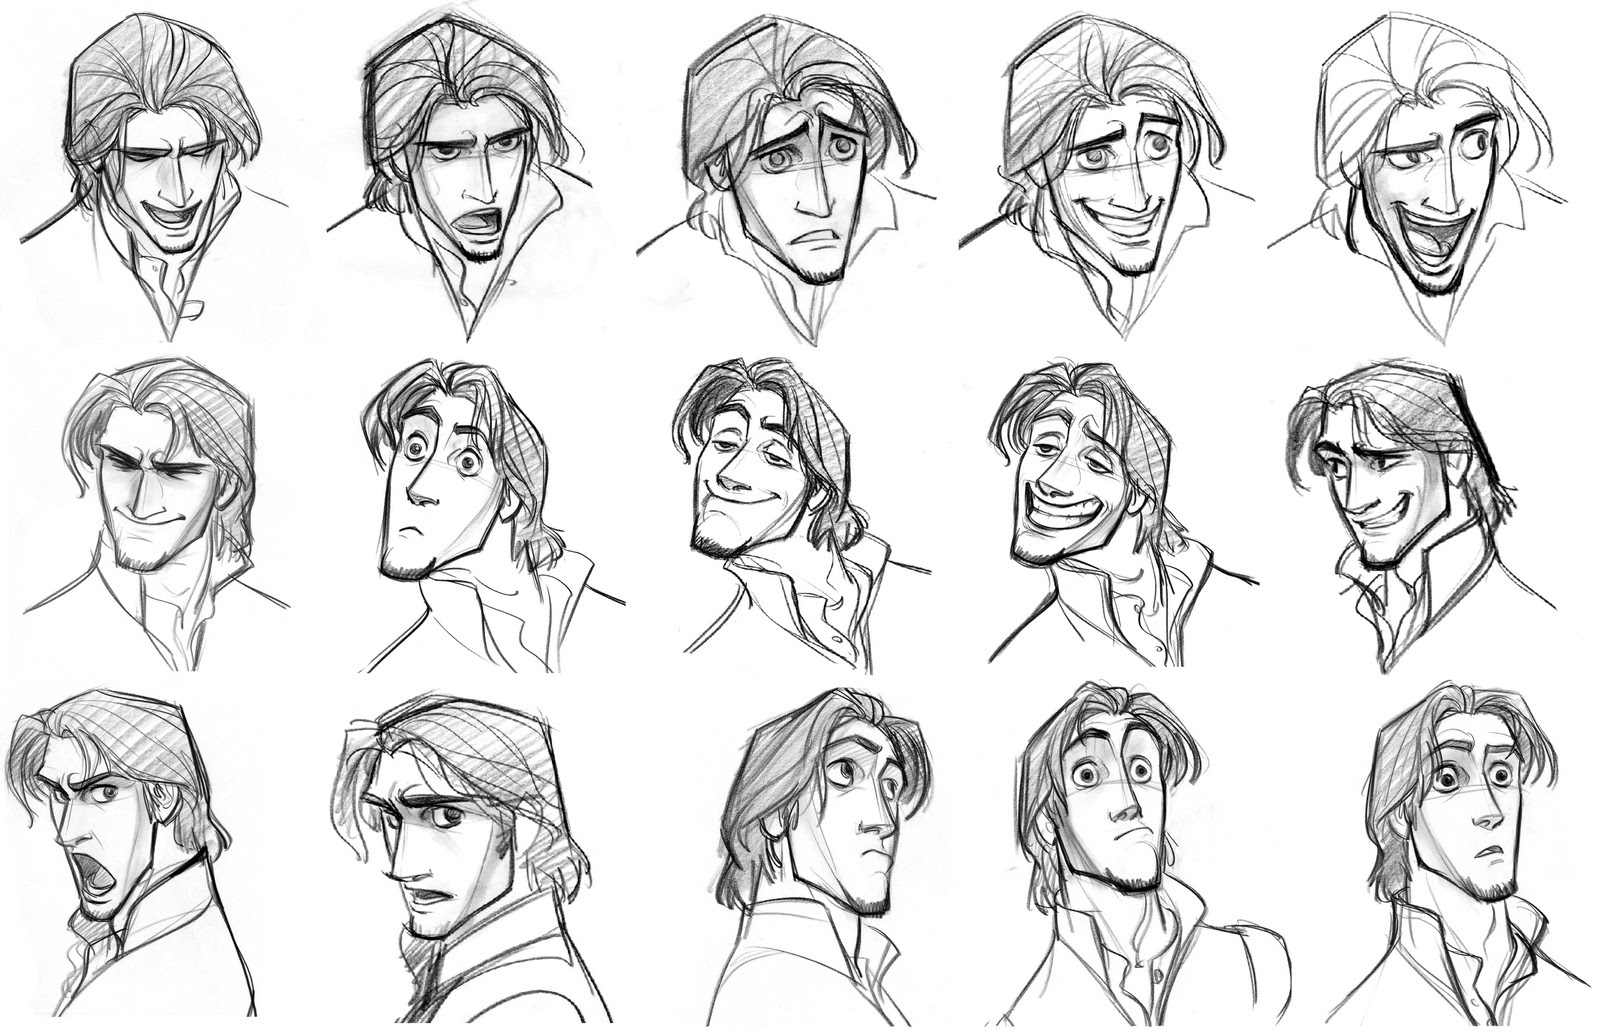 Character Design For Disney : Disney sketches images flynn rider eugene fitzherbert